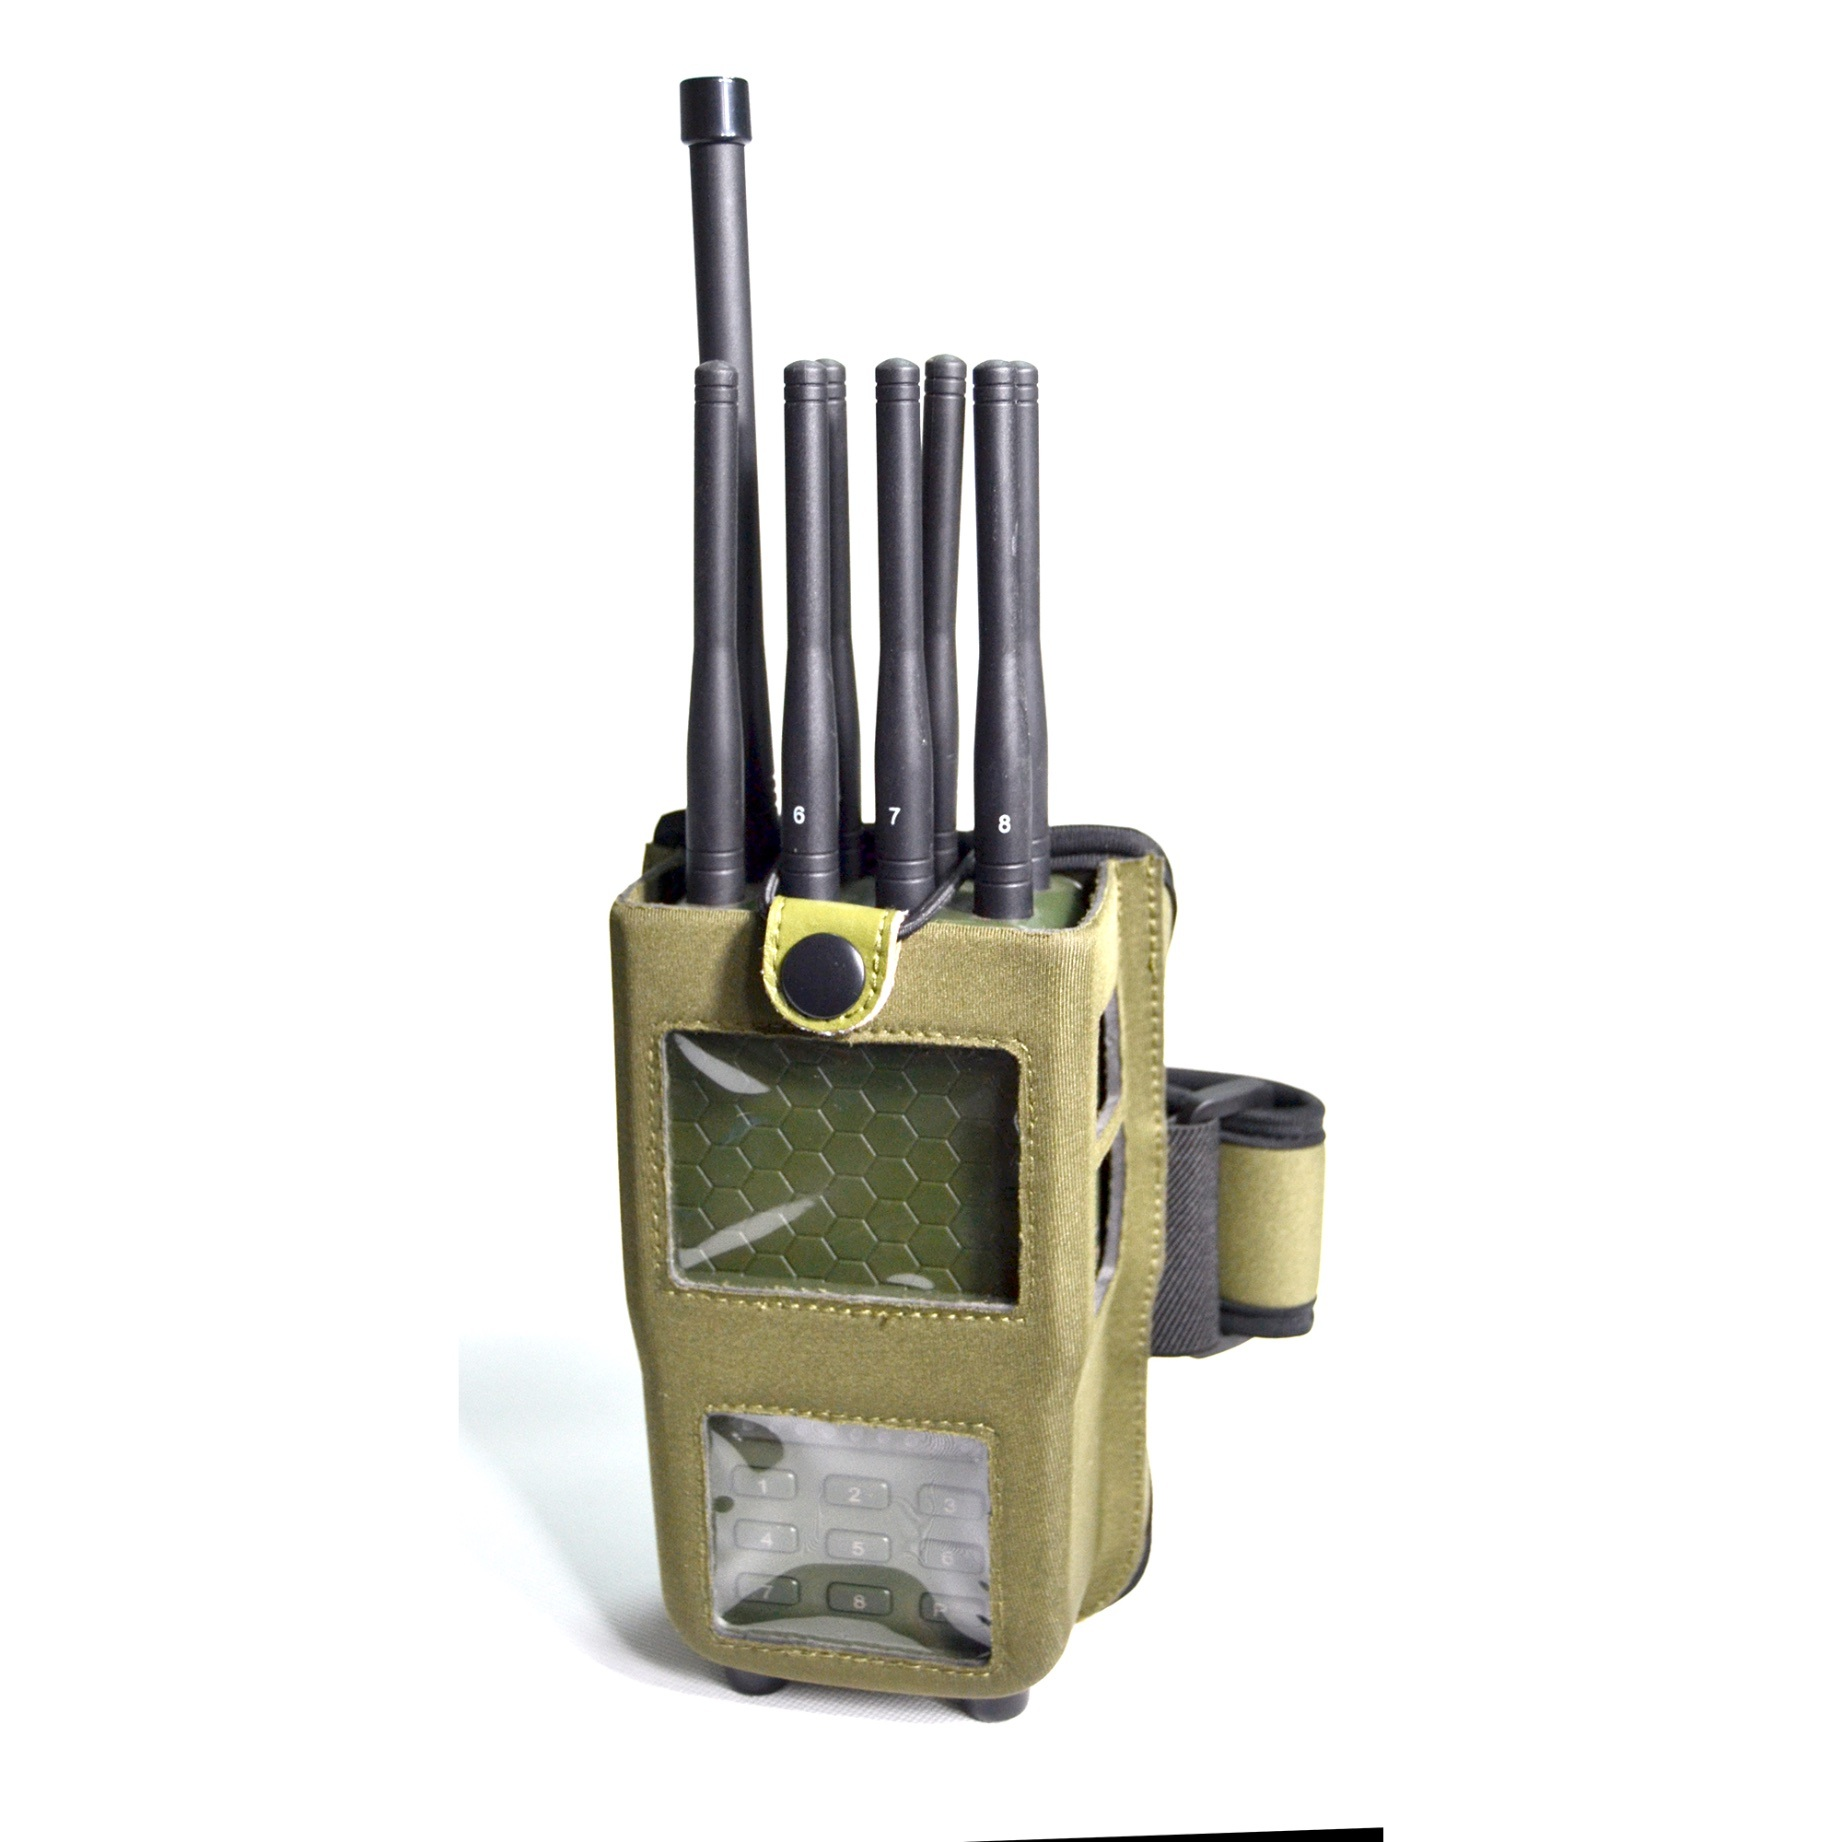 signal jammer Lake Elsinore , China Newest Portable Hanheld High Power 8-Channel Cellphone 2g 3G 4G GSM CDMA Signal WiFi Radio Lojack Jammer,3G 4G Cell Phone, Lojack 173MHz,RC433/315MHz GPS Jammer - China Portable Eight Antenna for All Cellular GPS Loj, Lojack/WiFi/4G/GPS/VHF/UHF Jammer